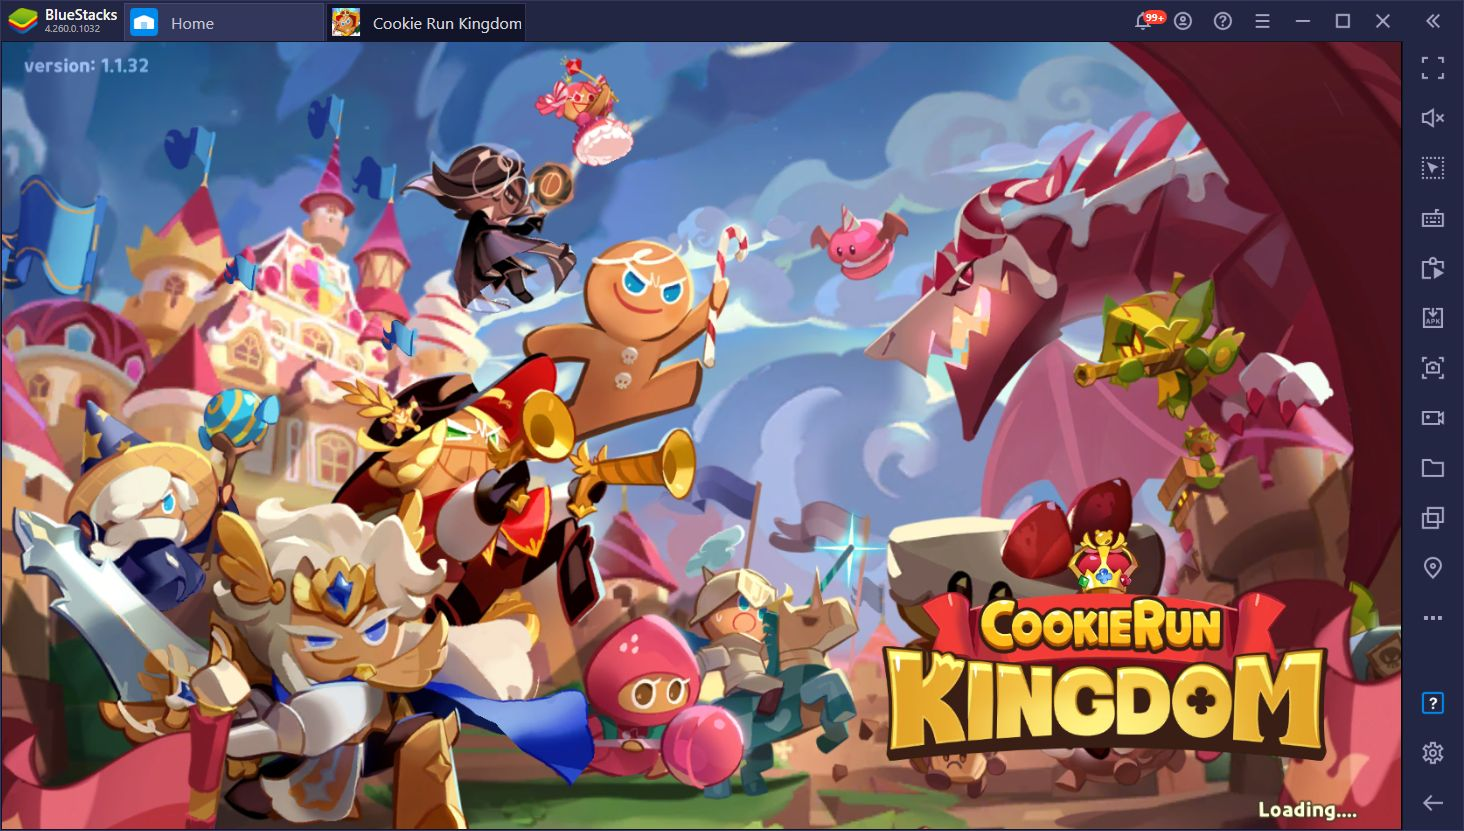 Cookie Run: Kingdom on PC – How to Play This New Mobile Game on Computer With BlueStacks